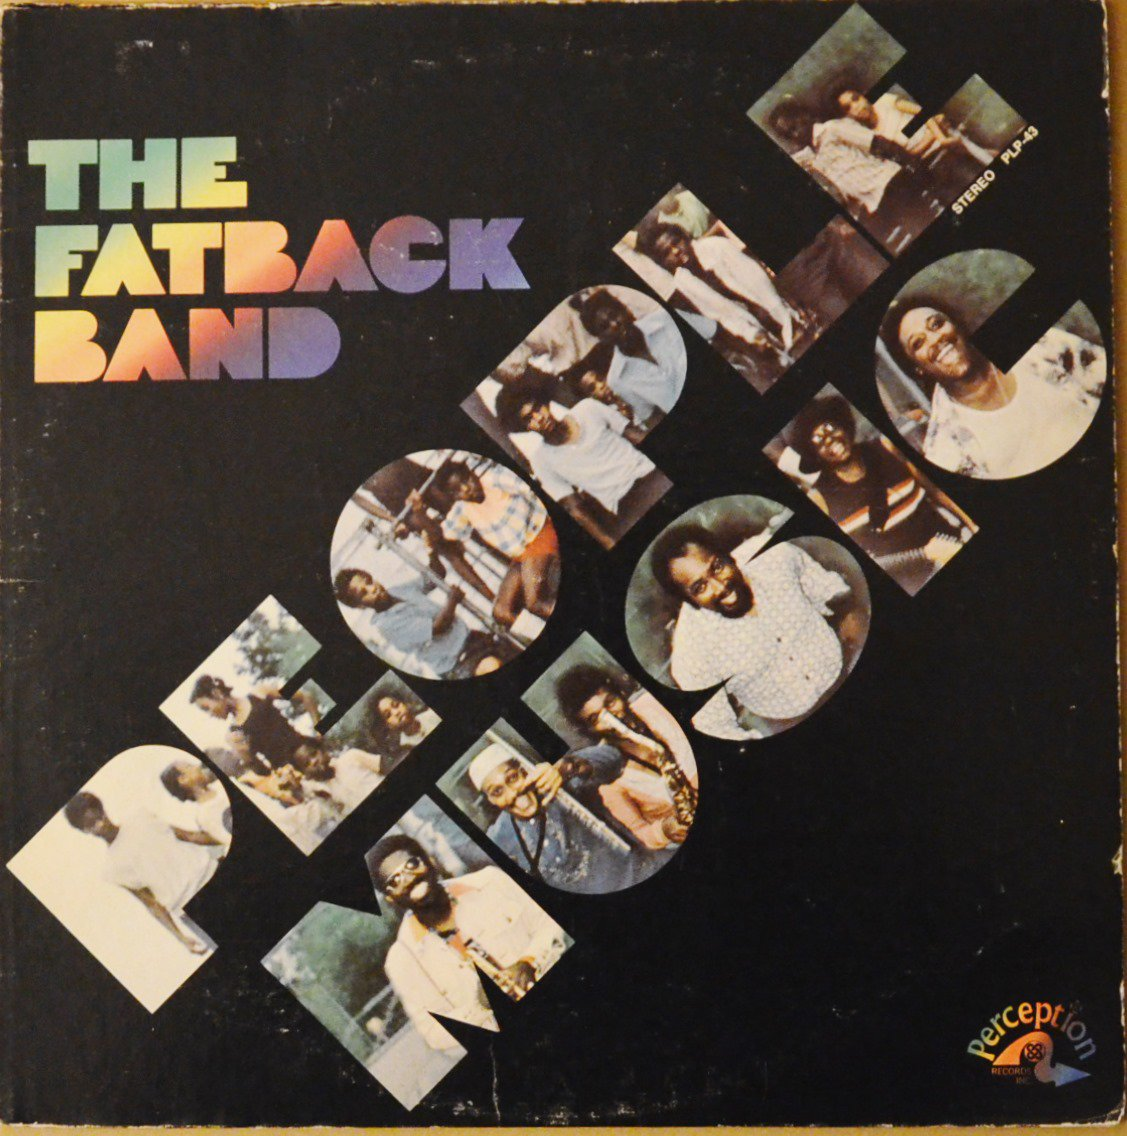 THE FATBACK BAND ‎/ PEOPLE MUSIC (LP)